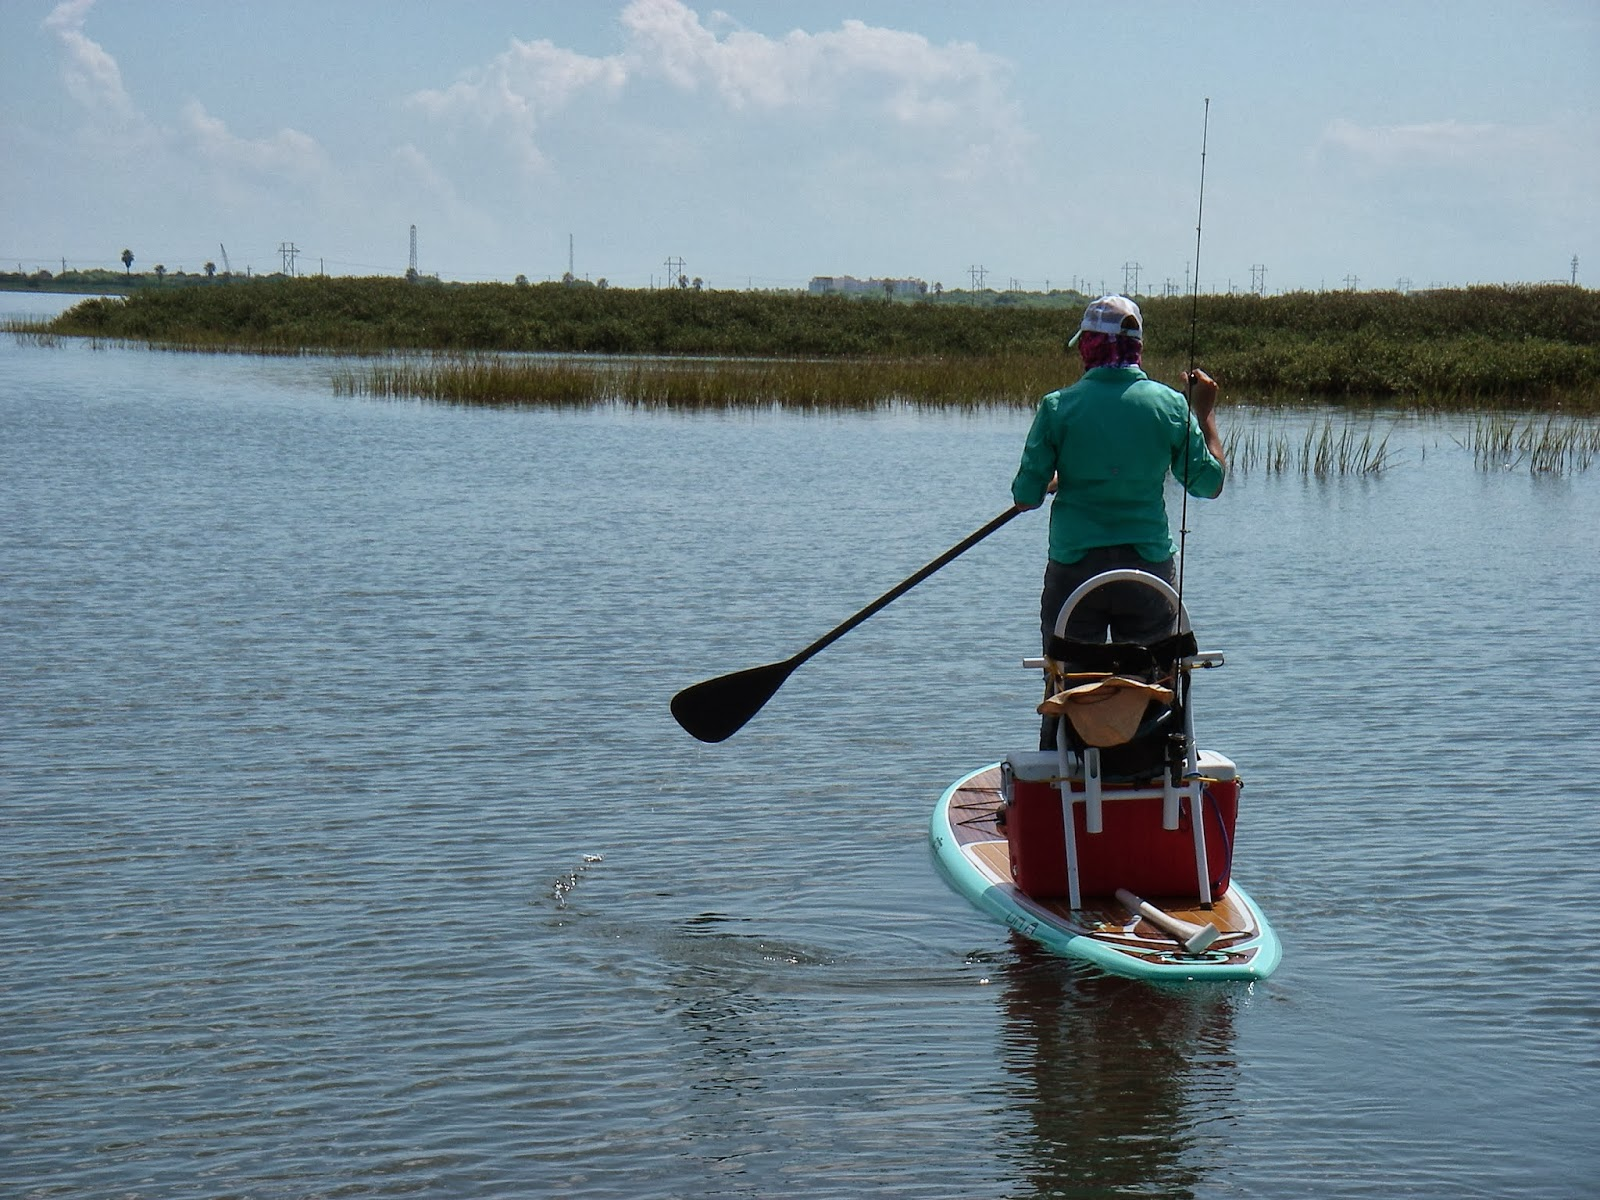 Fire fly fisherman texas coast paddleboard fishing for Paddleboard for fishing